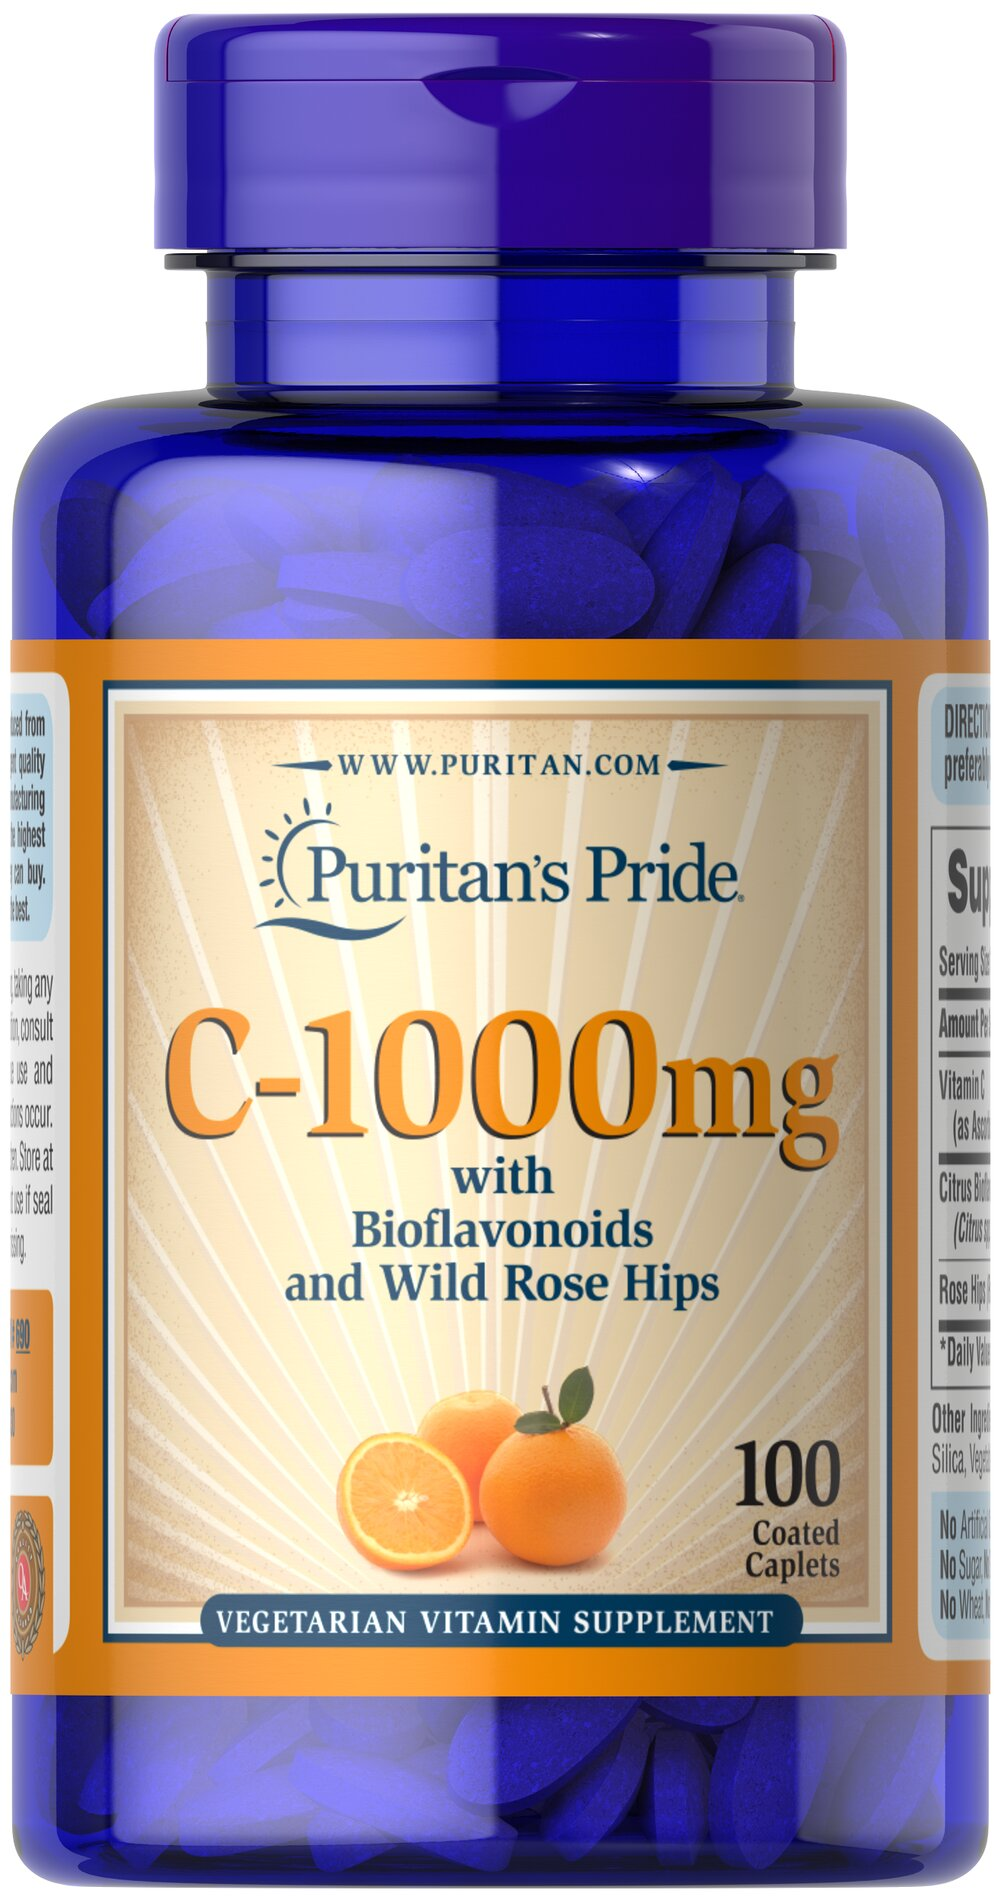 Vitamin C-1000 mg with Bioflavonoids & Rose Hips  100 Caplets 1000 mg $9.34